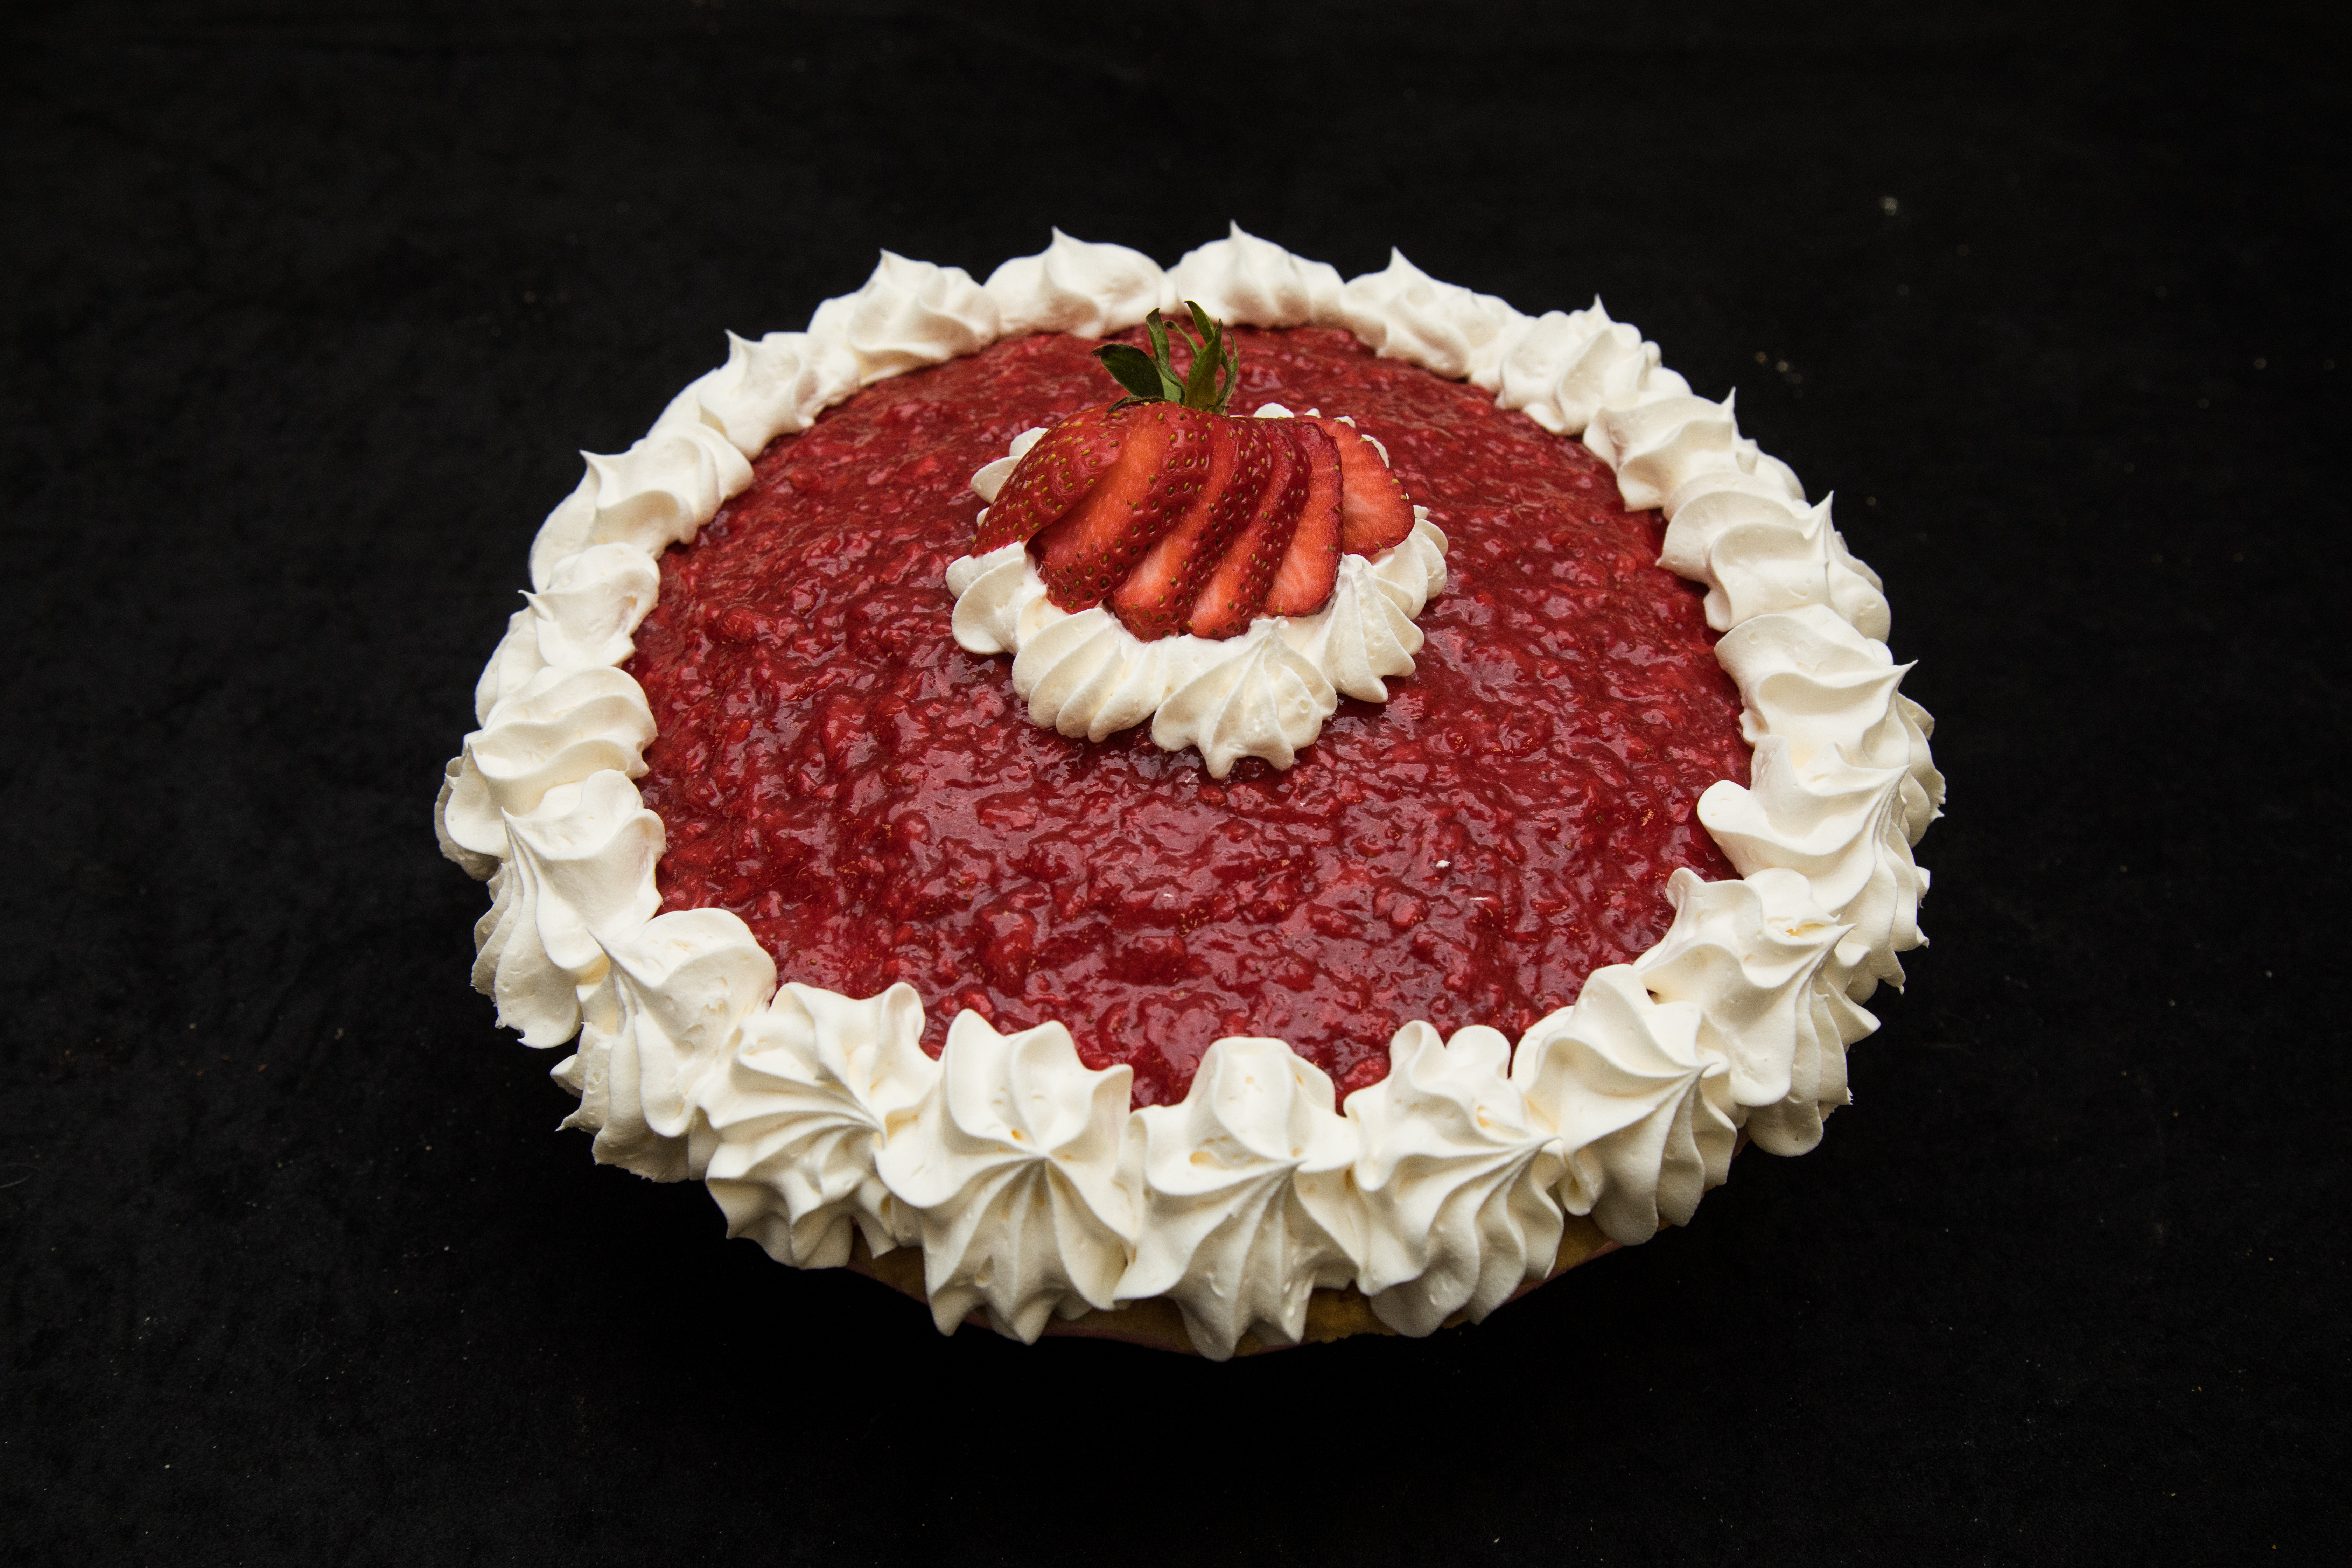 2019 1st Place Professional Comstock, Take Stock of your Strawberry Pie, Lisa Sparks, Atlanta, IN